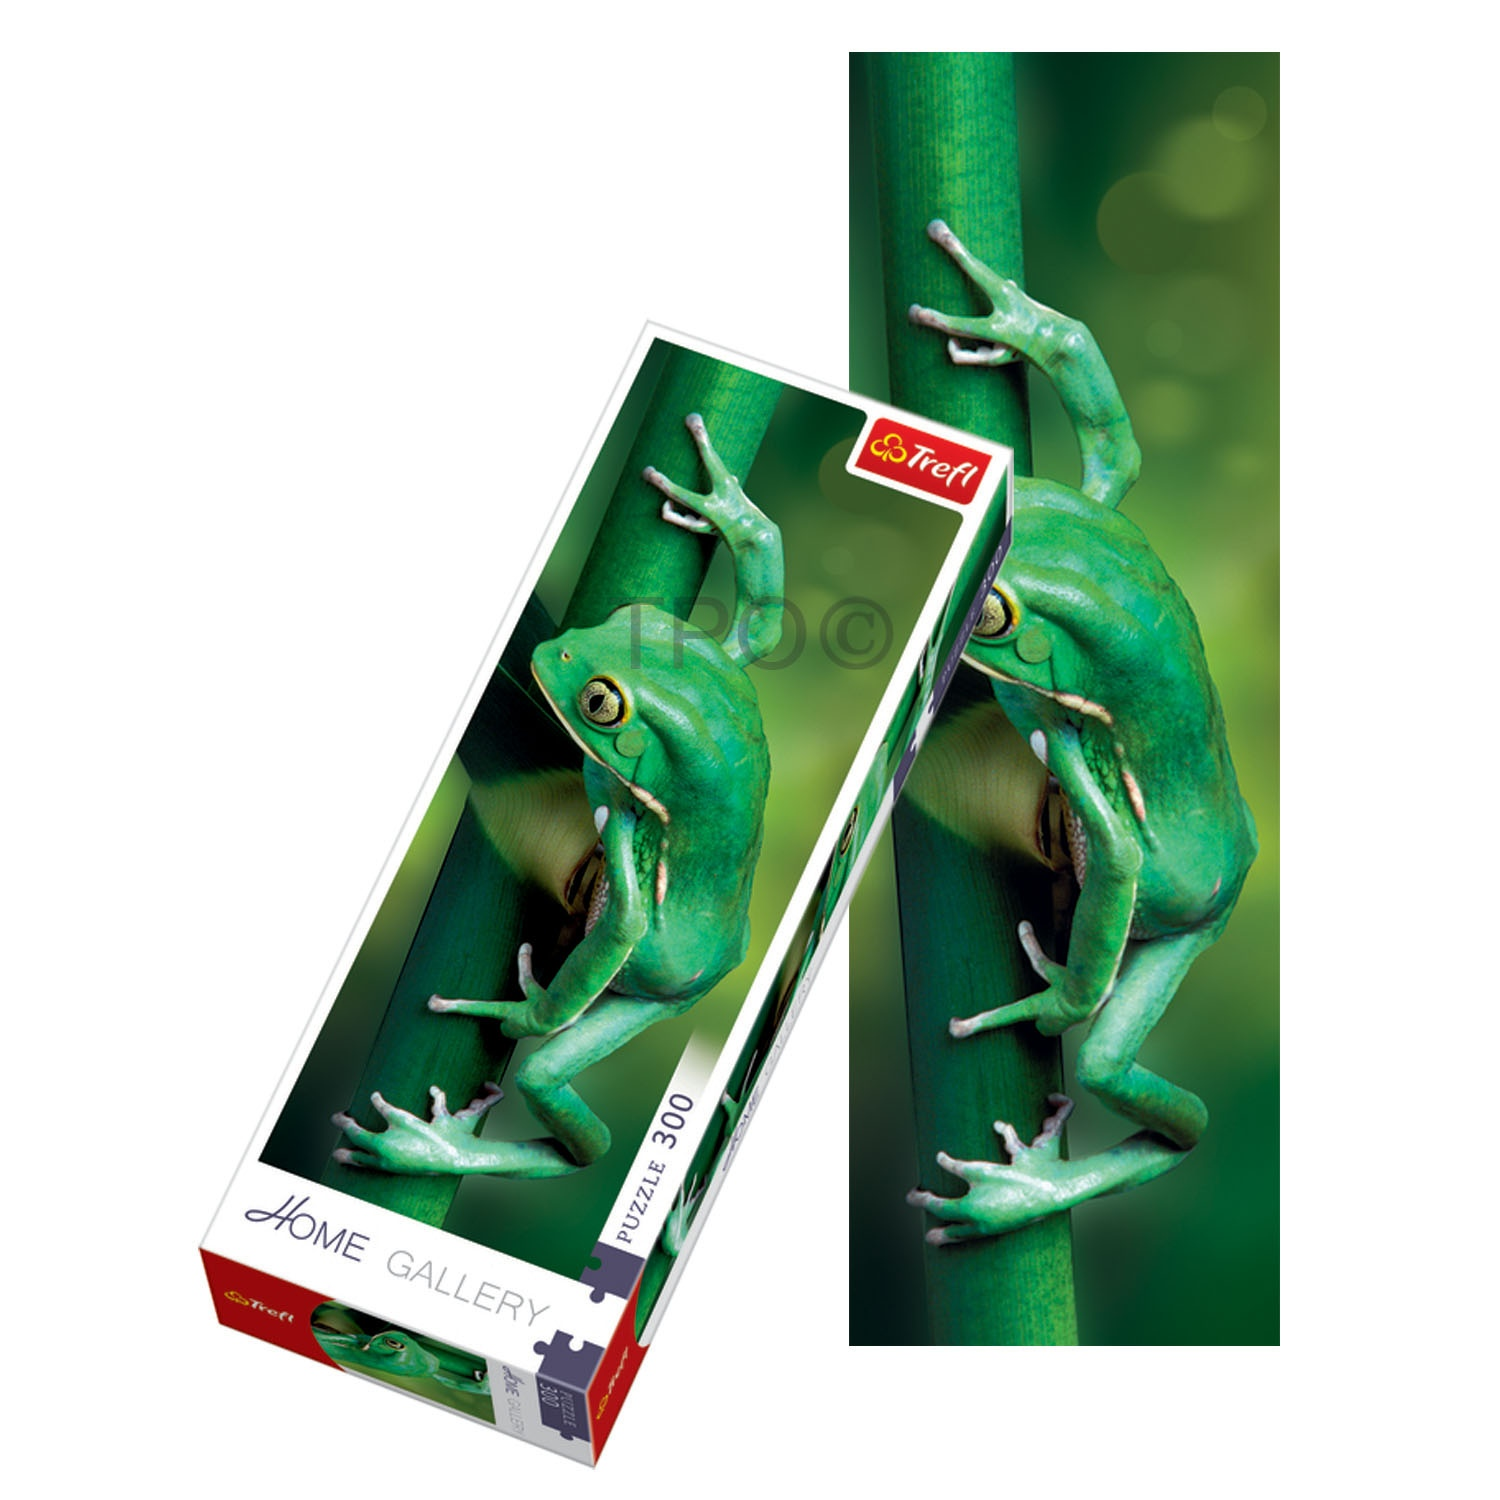 Details about Trefl 300 Piece Adult Large Home Gallery Frog Climbing Stalk  Jigsaw Puzzle NEW